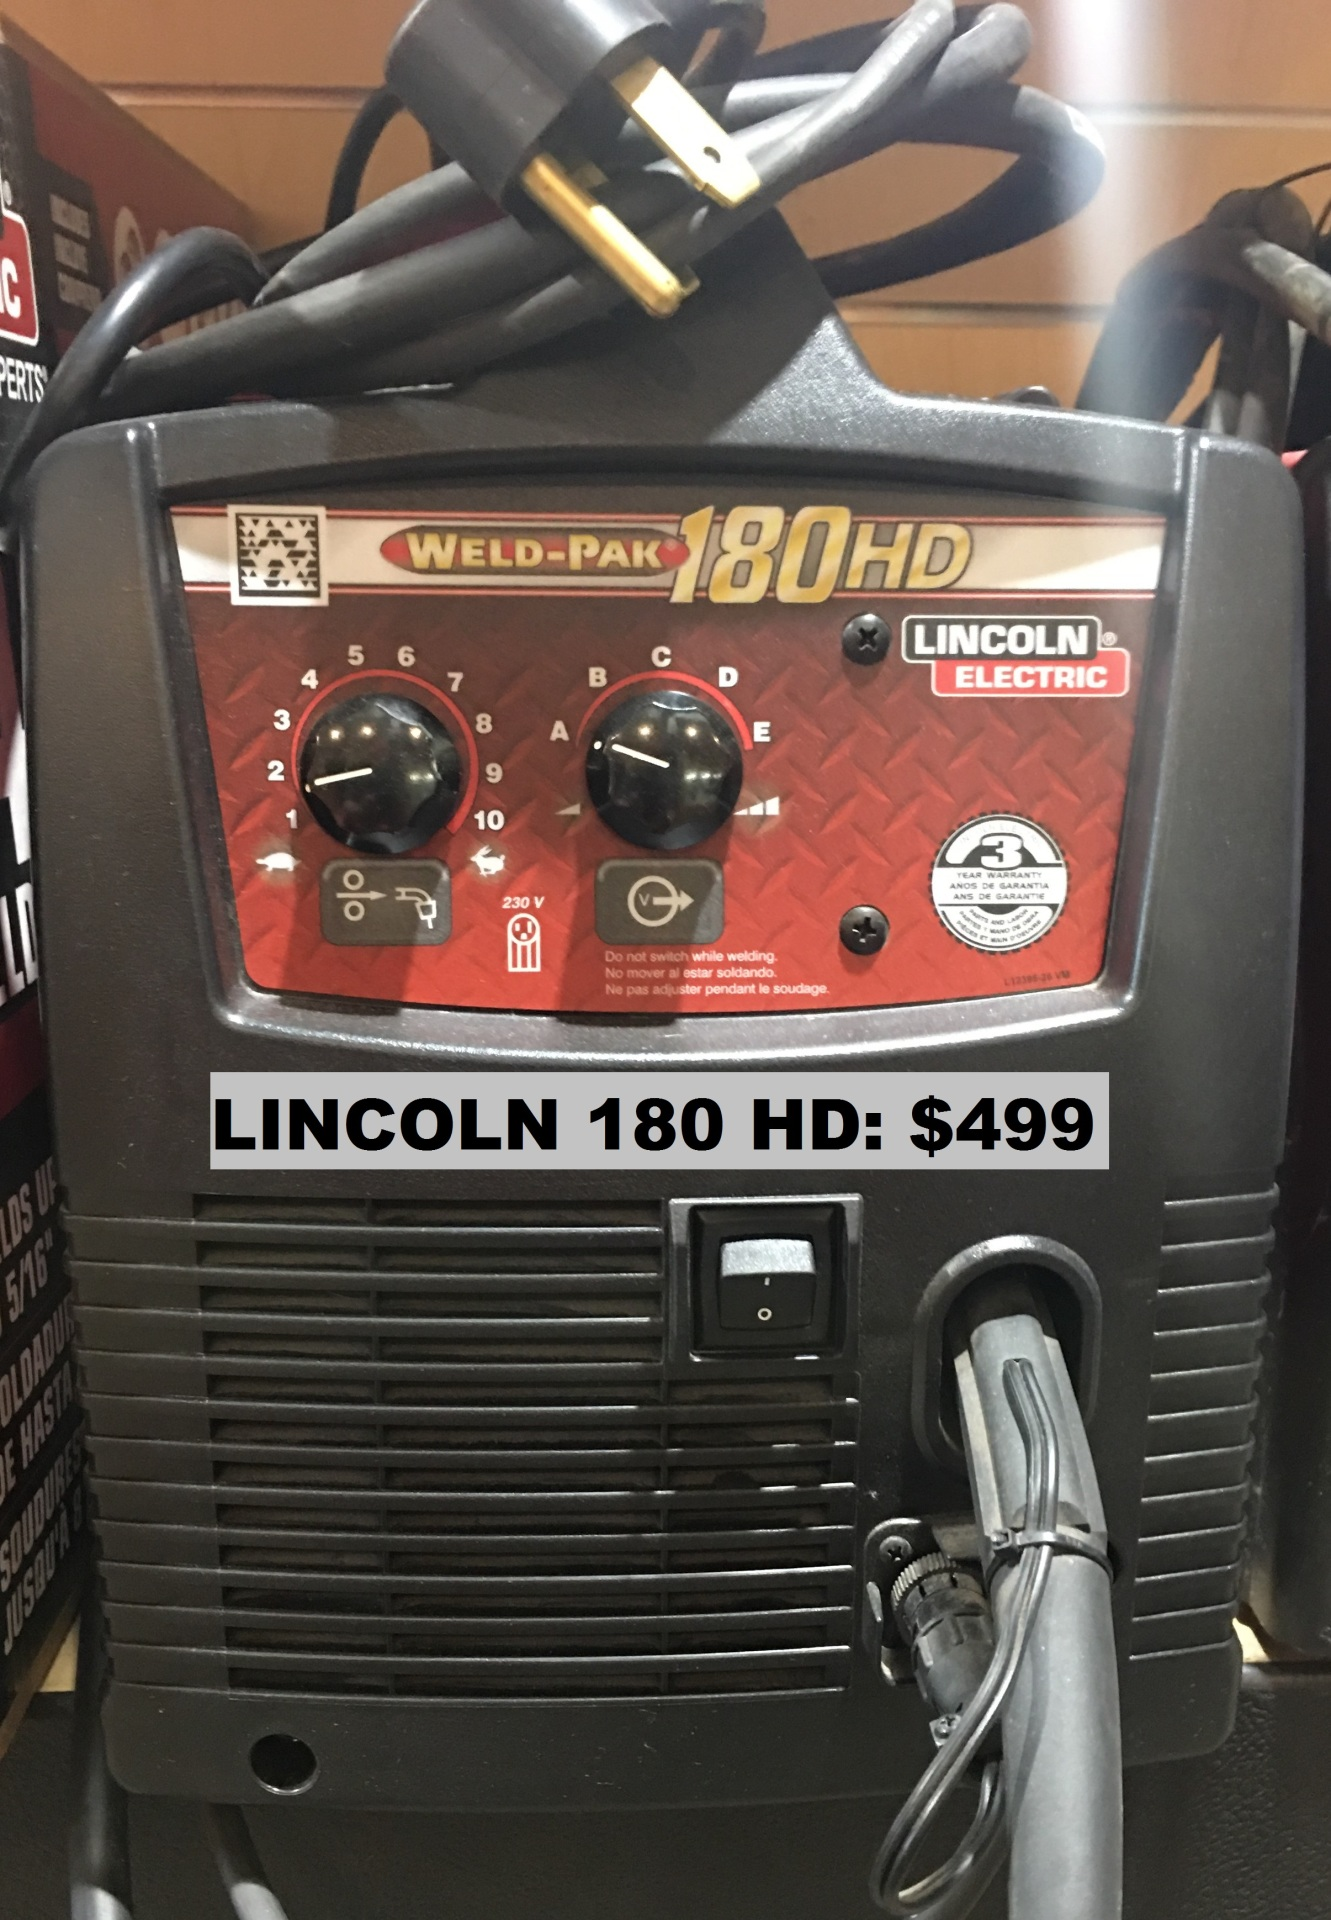 Bigger Lincoln welder